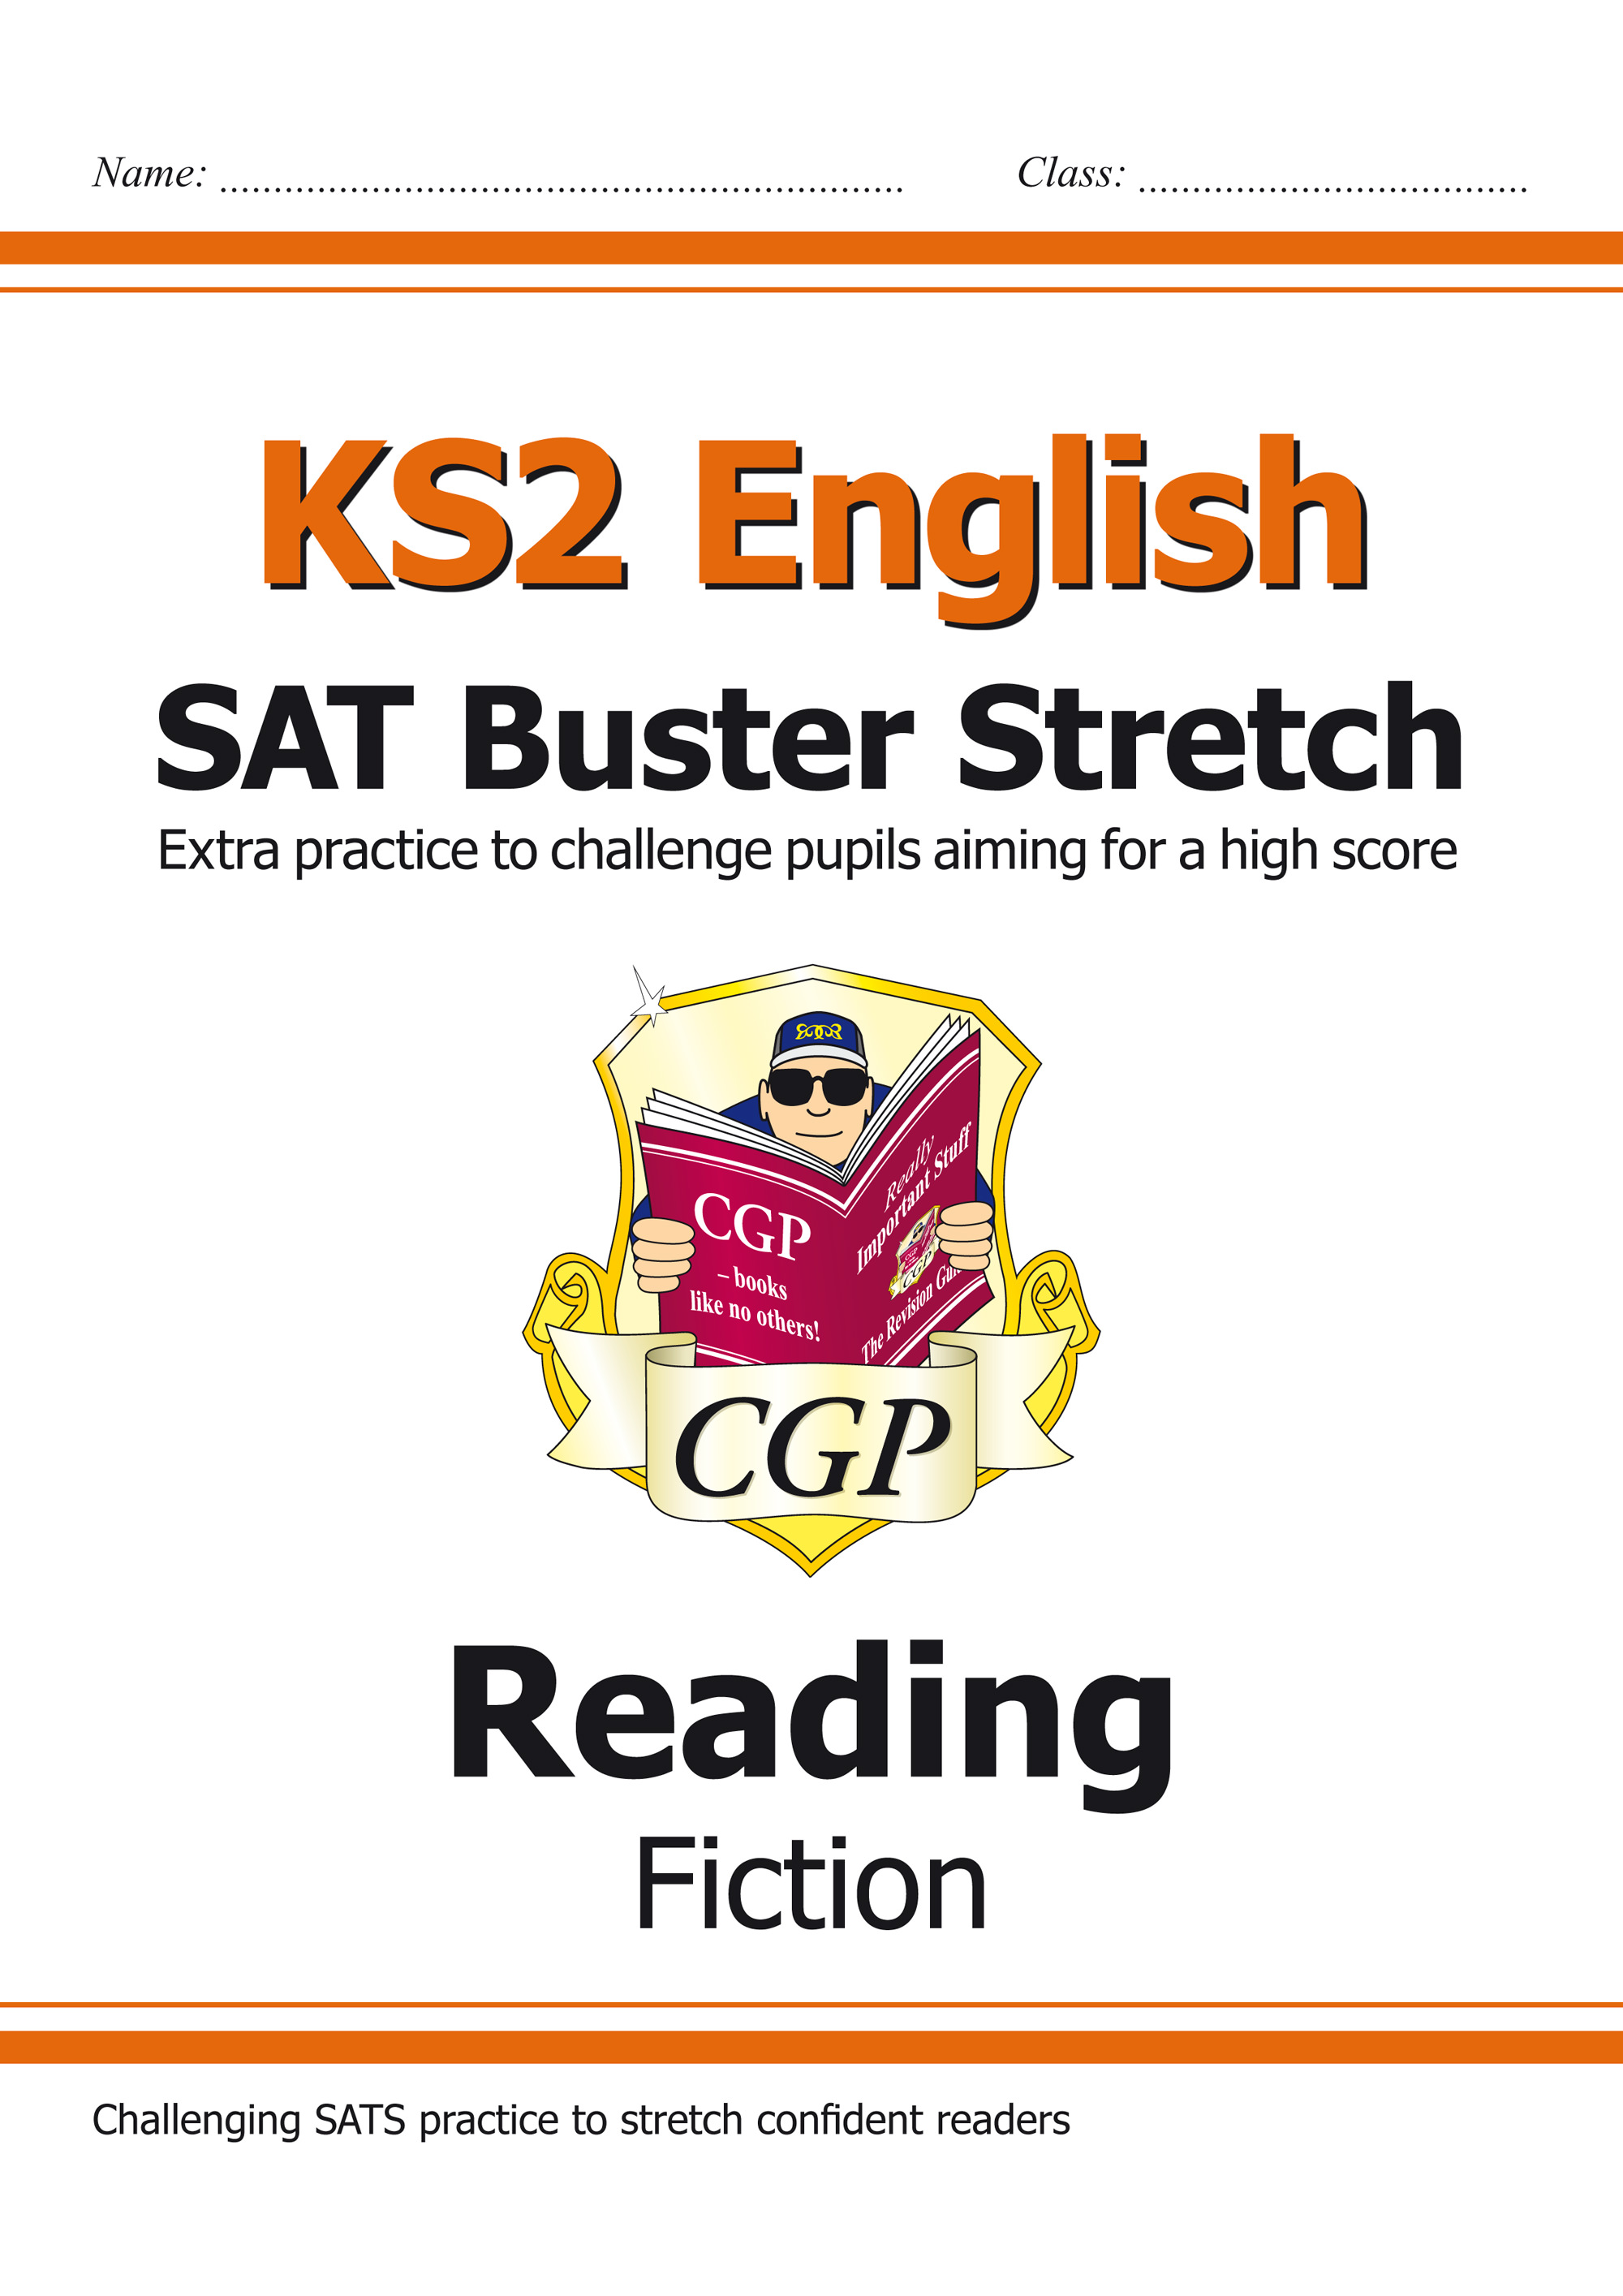 E6HRF21 - KS2 English Reading SAT Buster Stretch: Fiction (for tests in 2018 and beyond)